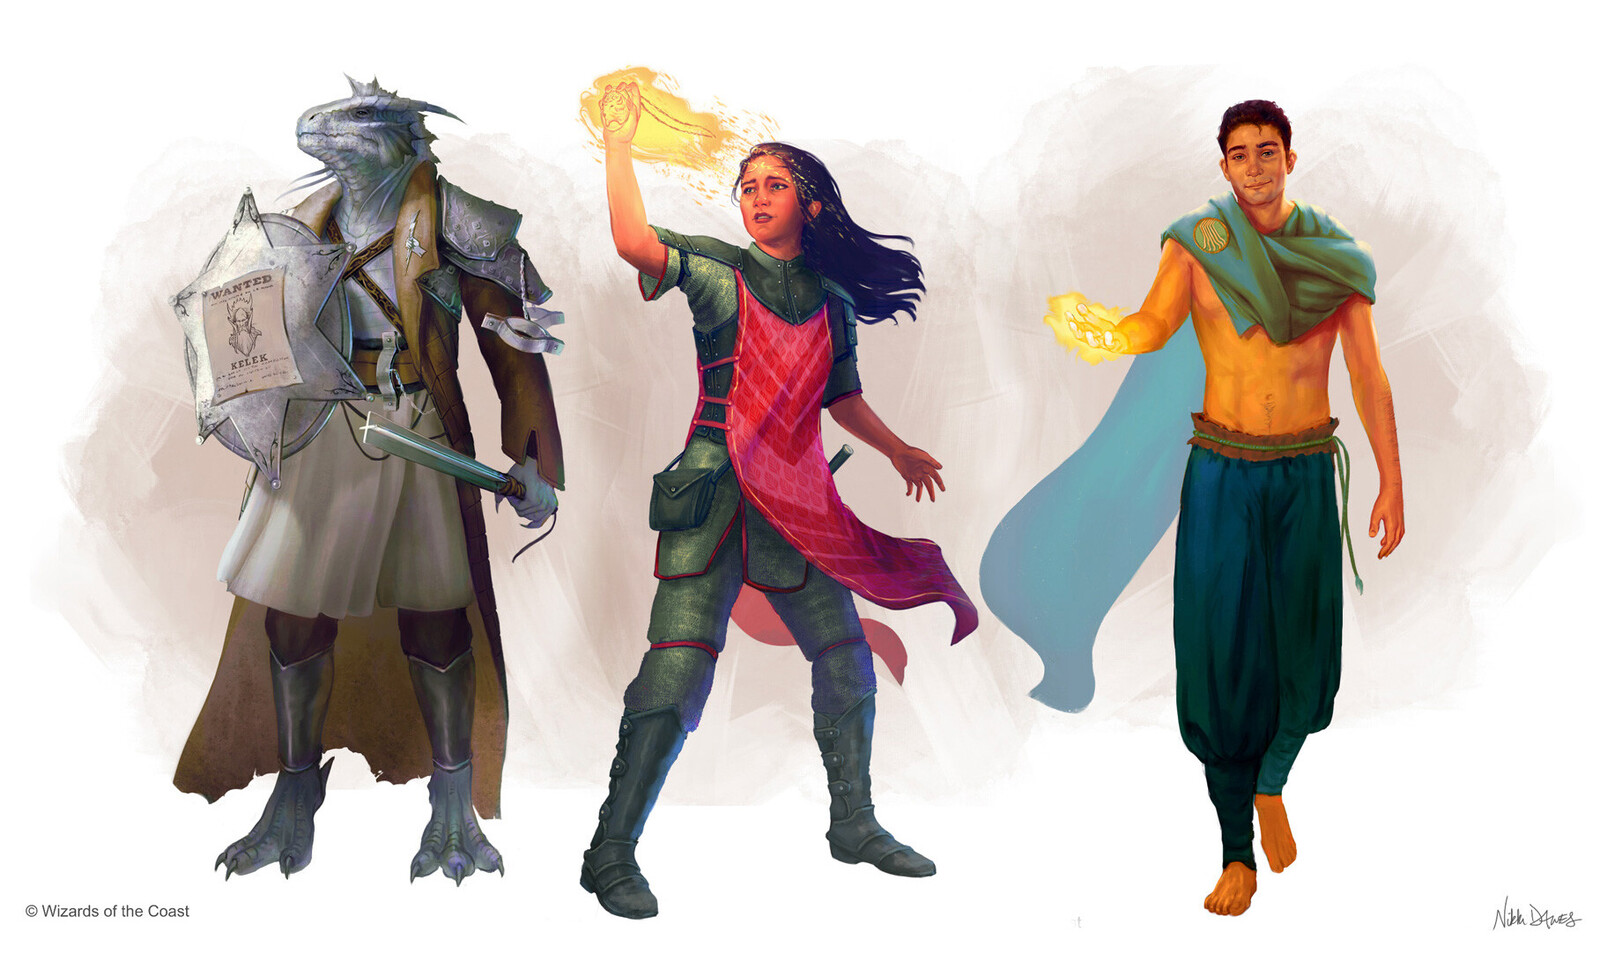 Clerics: Dragonborn Cleric of Order, Human Cleric casting Harness Divine Power, and Human Cleric of Peace